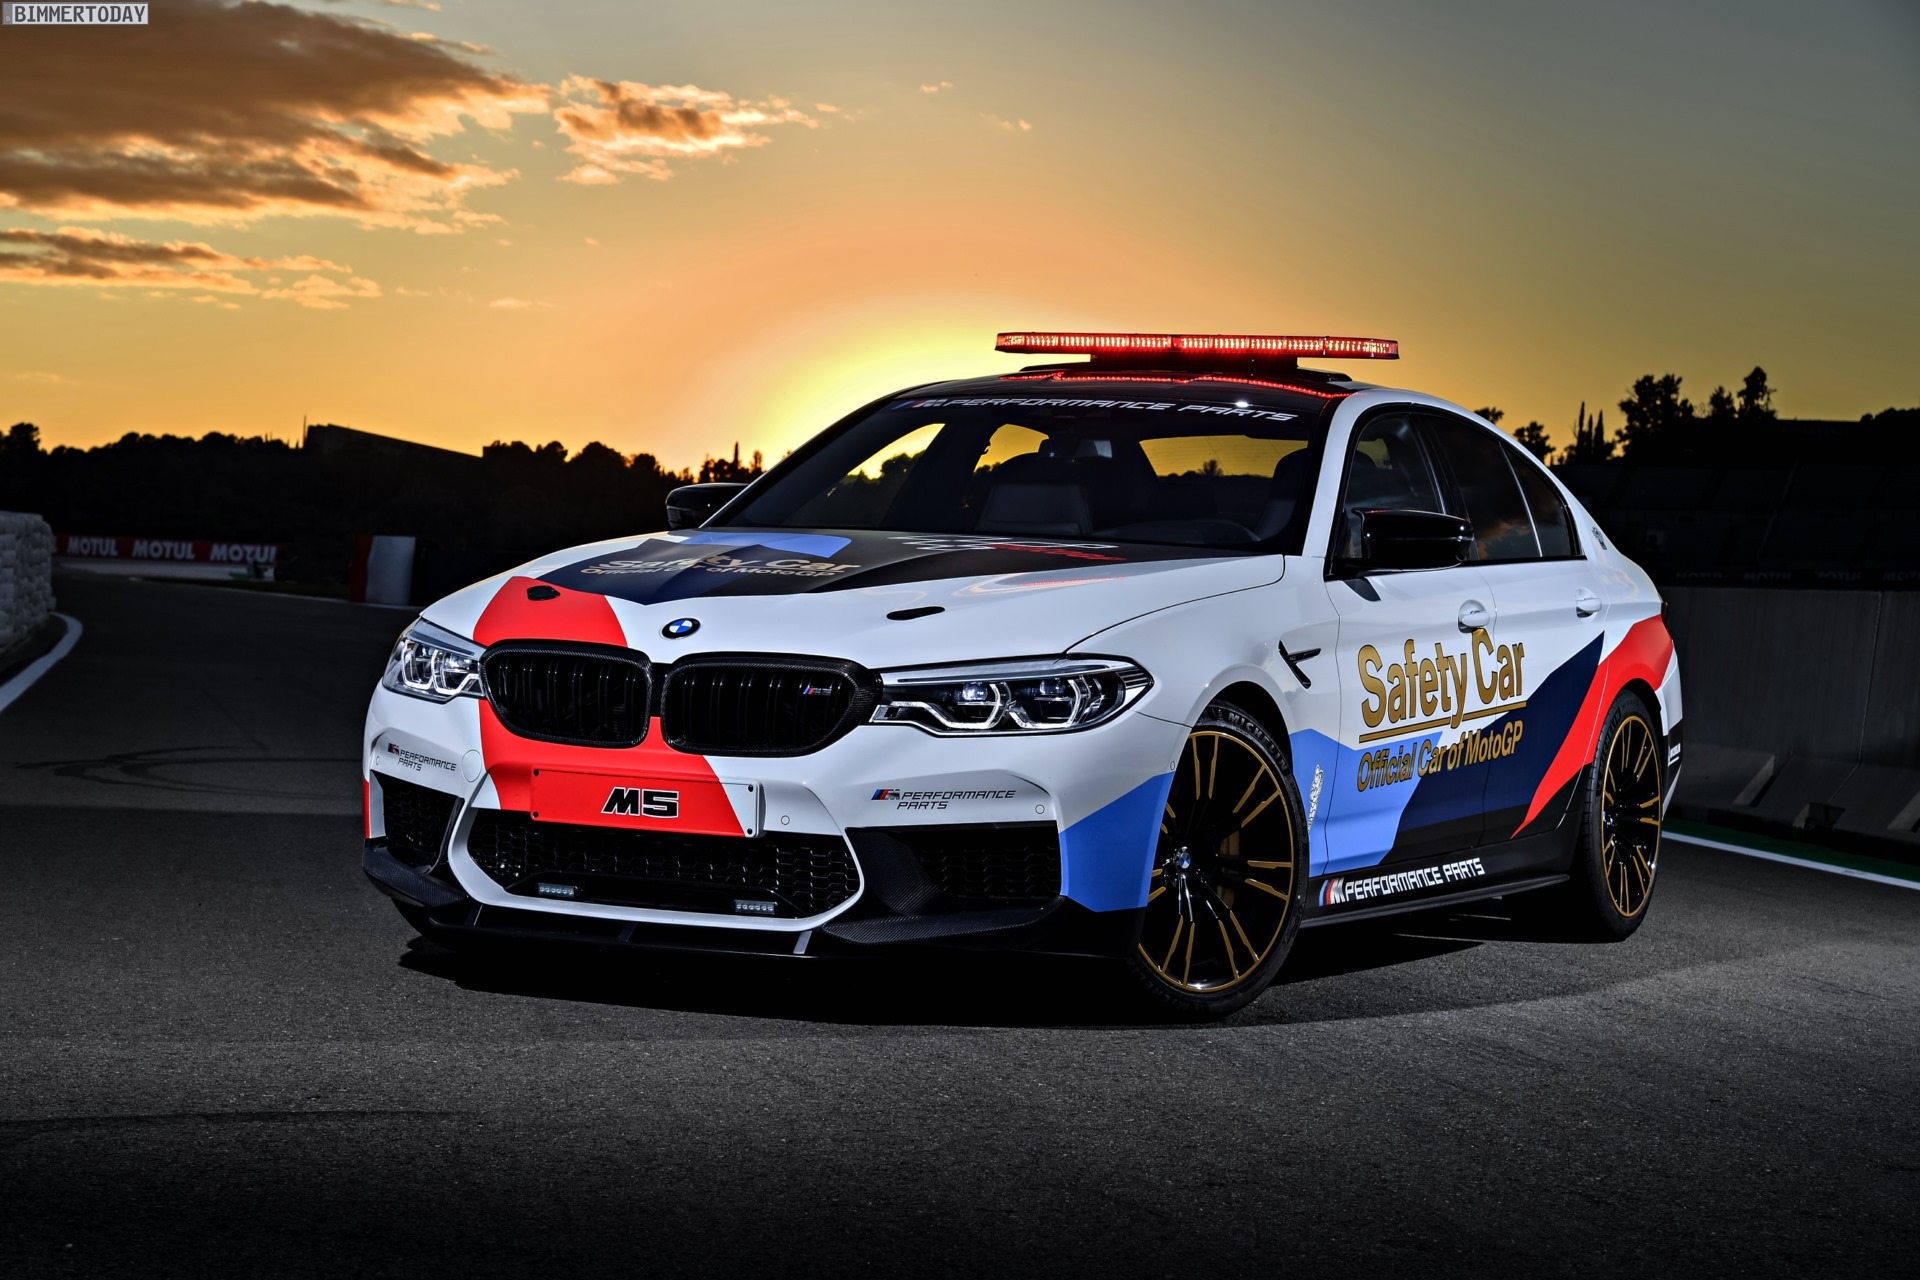 nouvelle galerie photos de la bmw m5 safety car motogp 2018 bmw. Black Bedroom Furniture Sets. Home Design Ideas